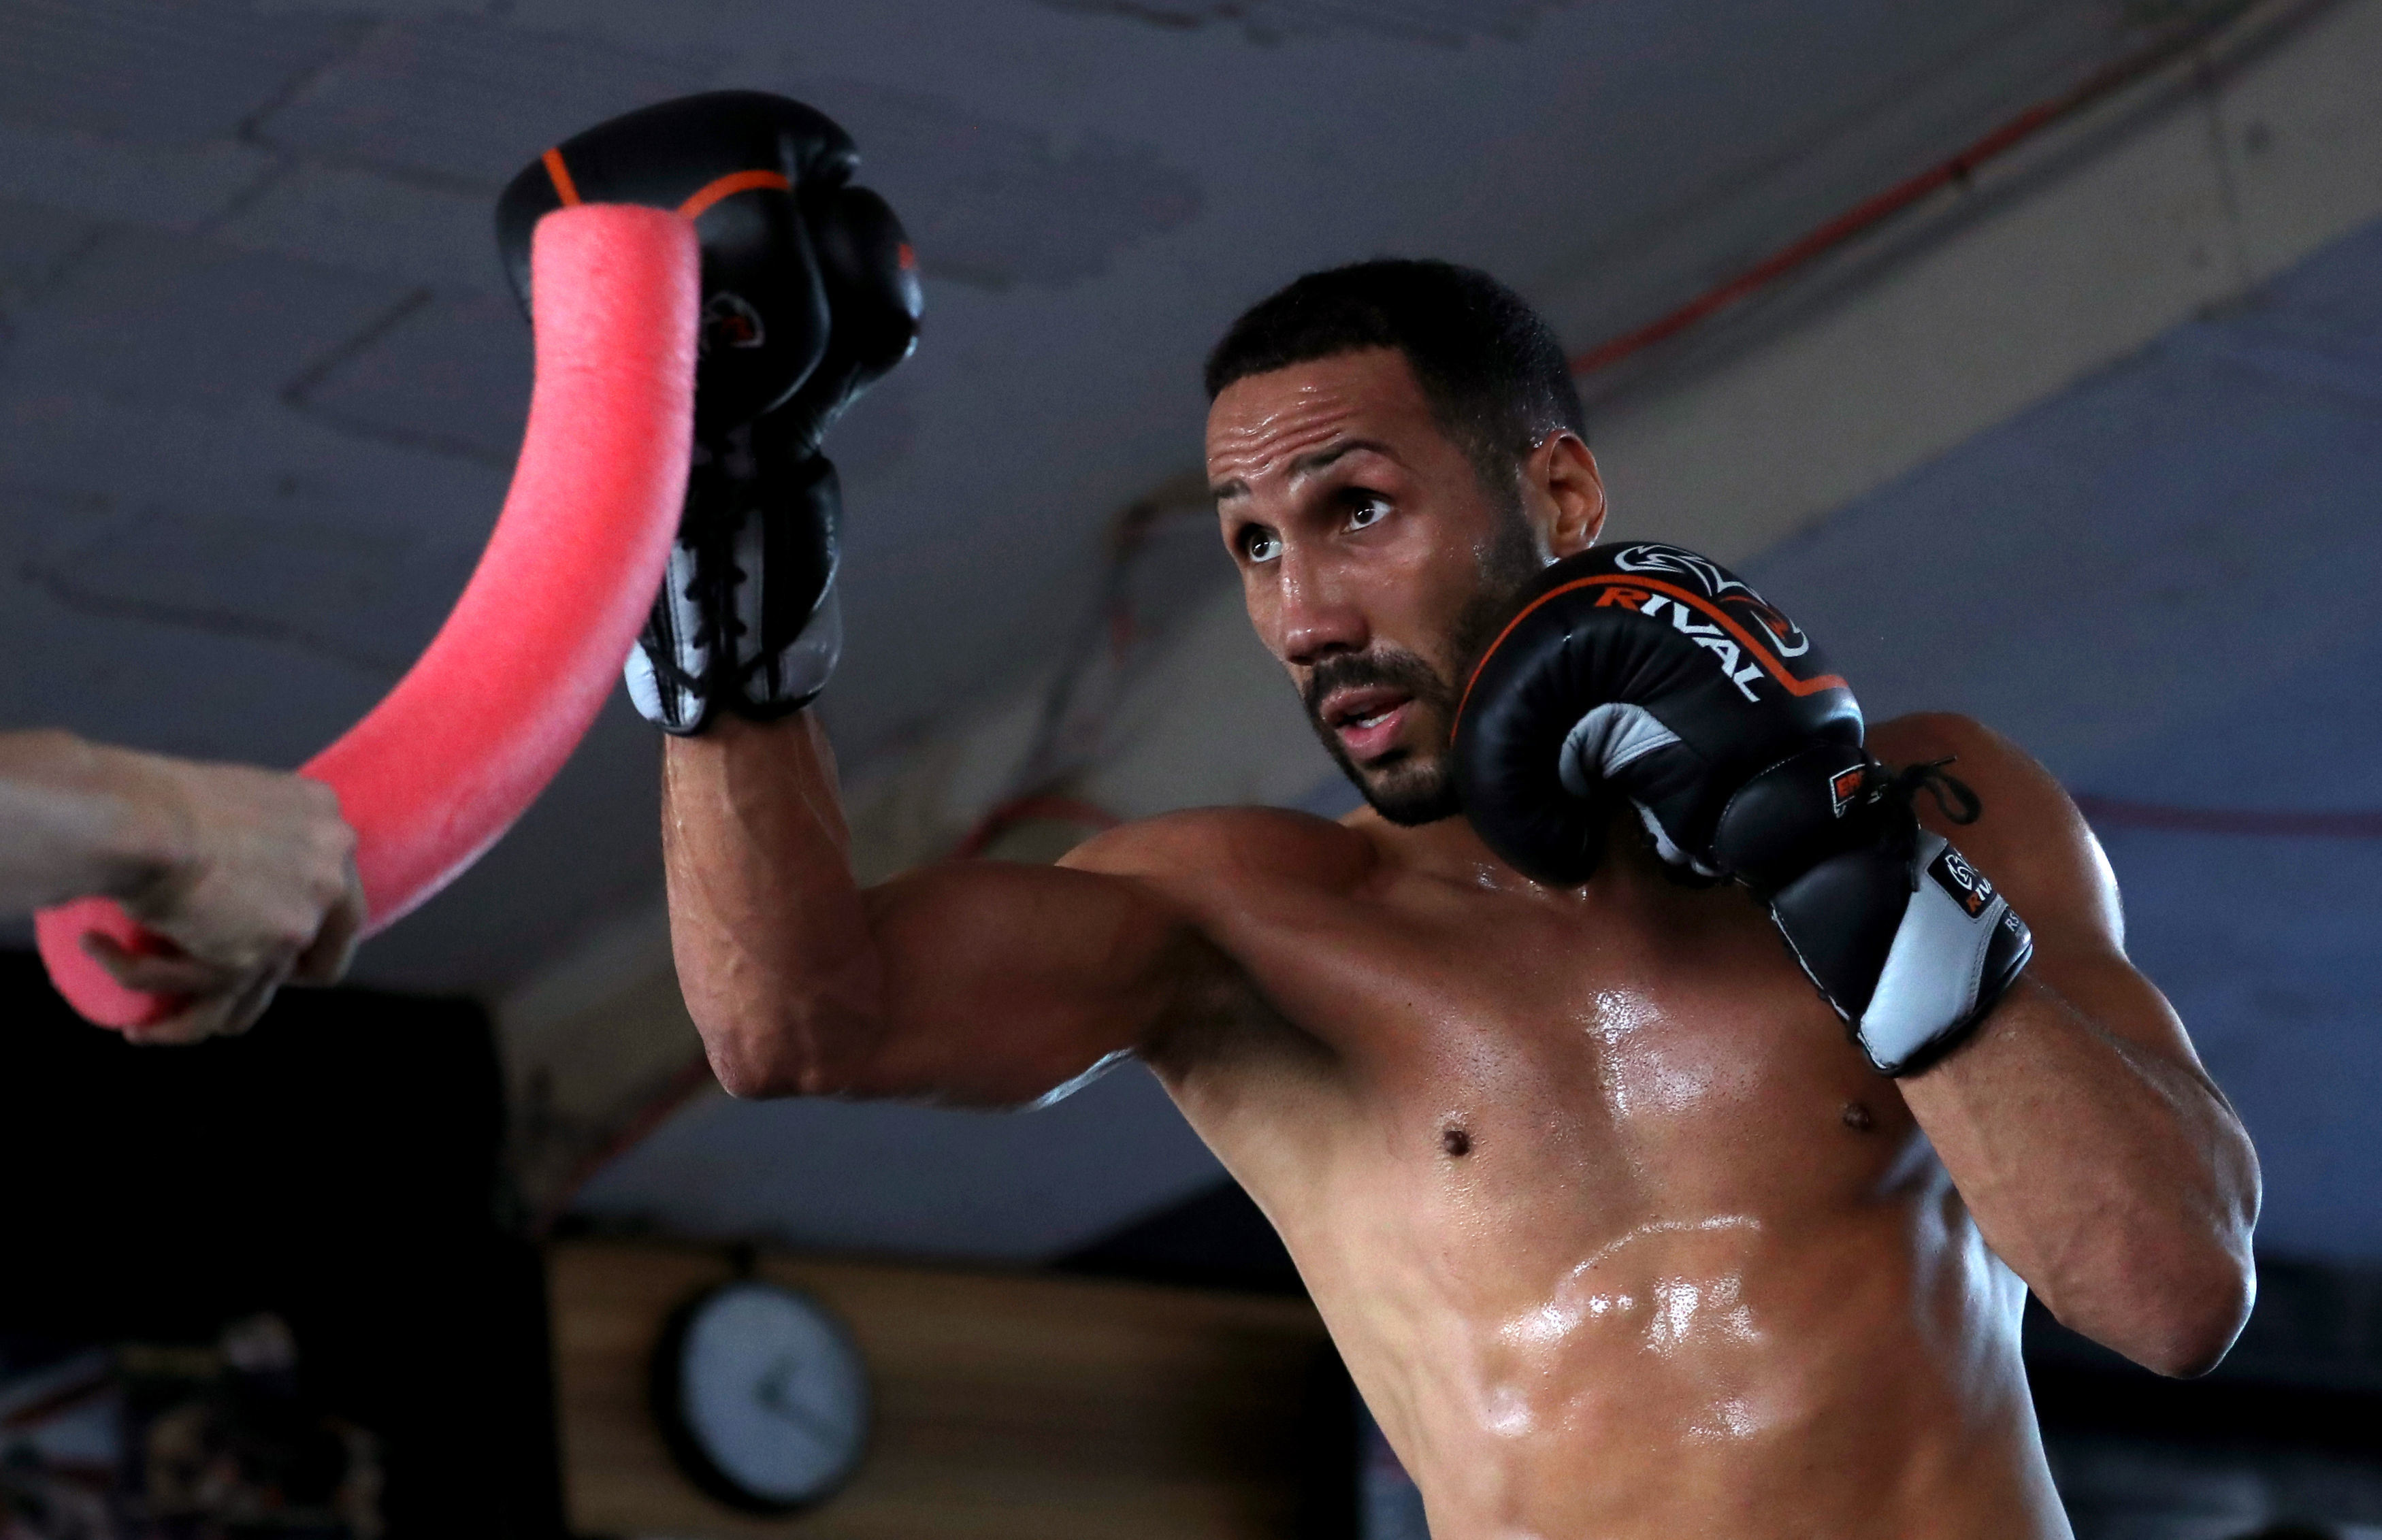 MVP claims DeGale attempted to land a hook on him before the sparring had commenced